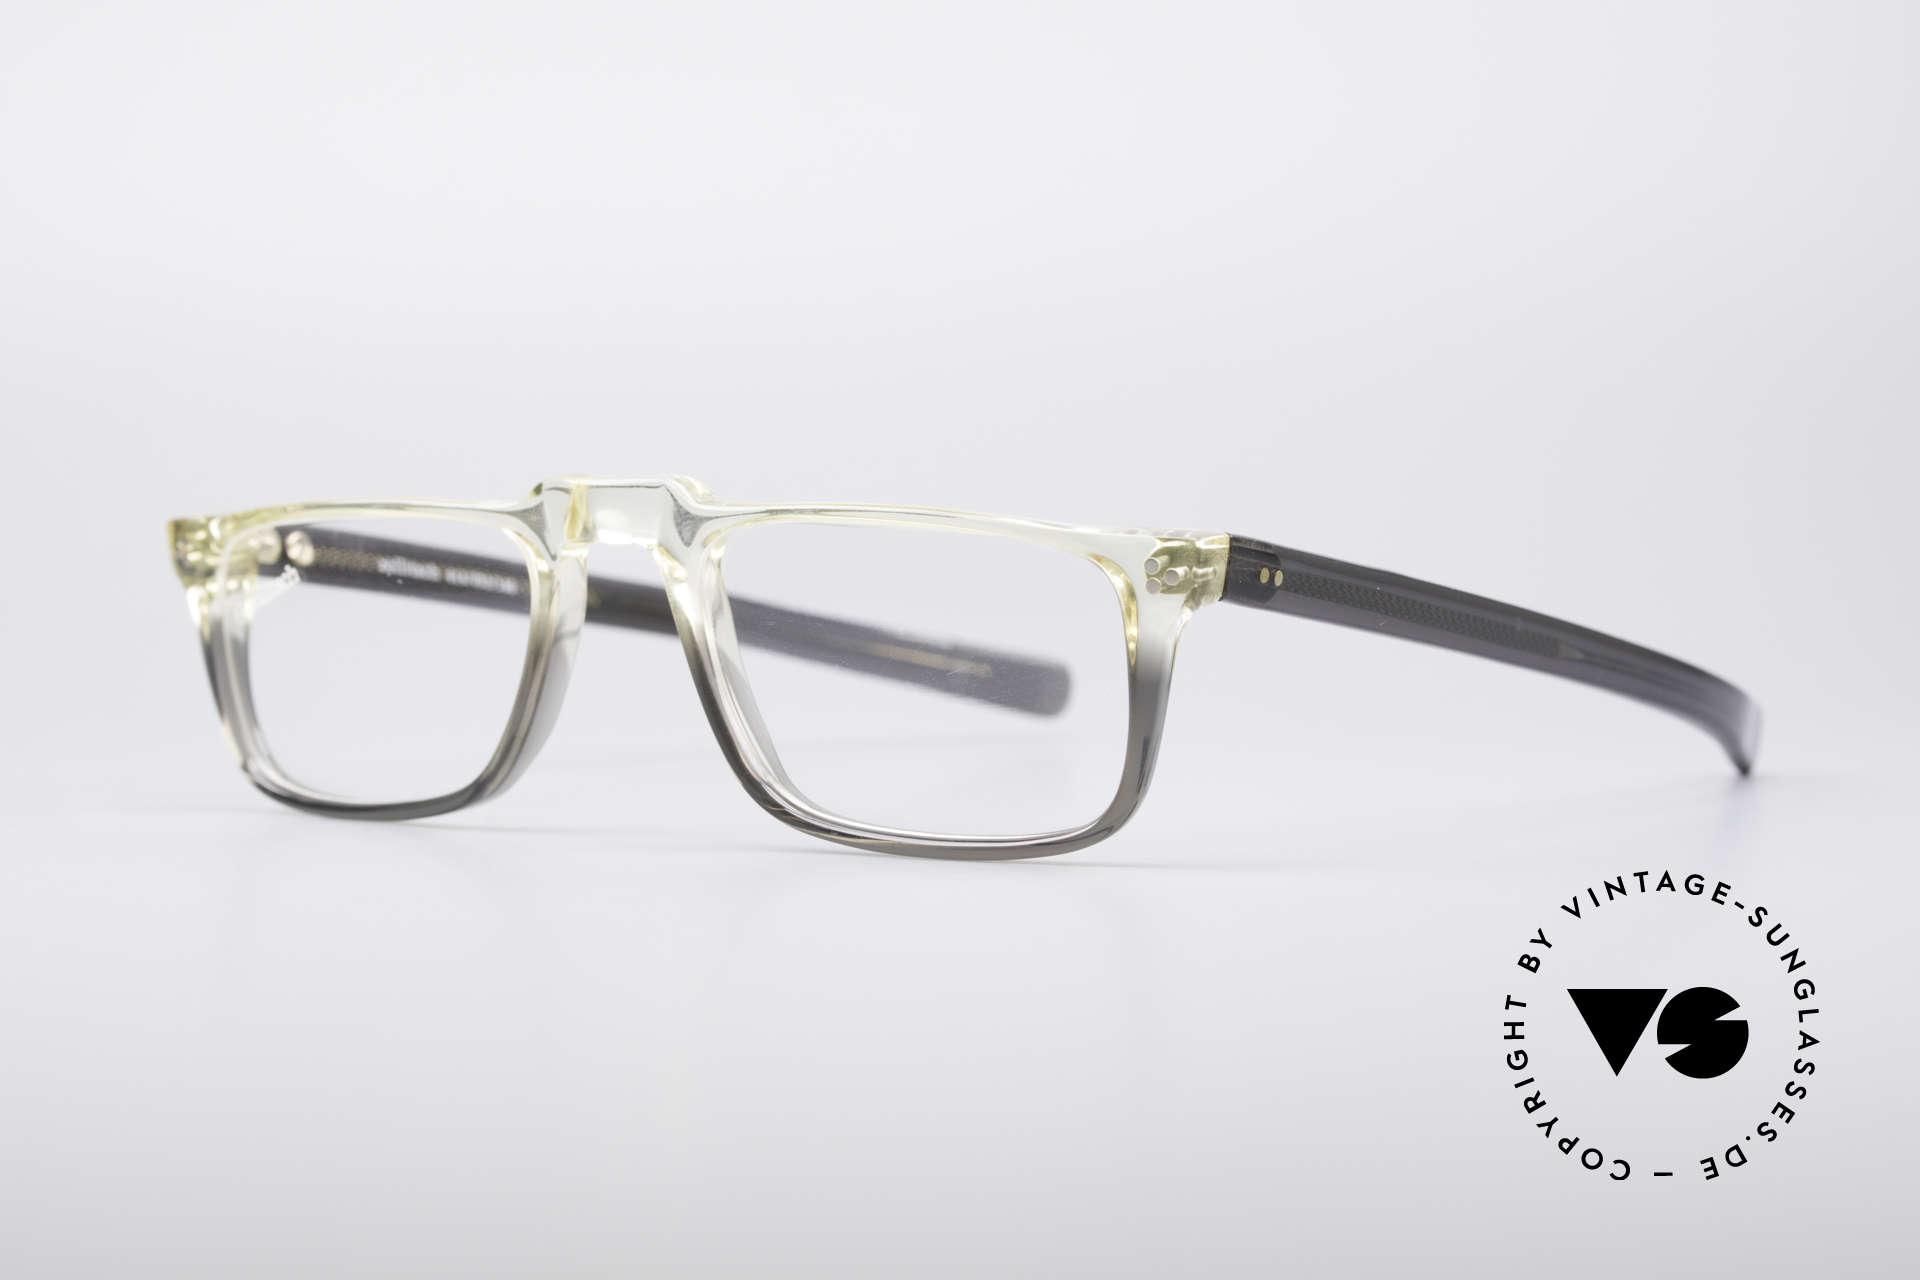 Zollitsch 414 Old 70's Reading Glasses, old 'made in Germany' craftsmanship - monolithic!, Made for Men